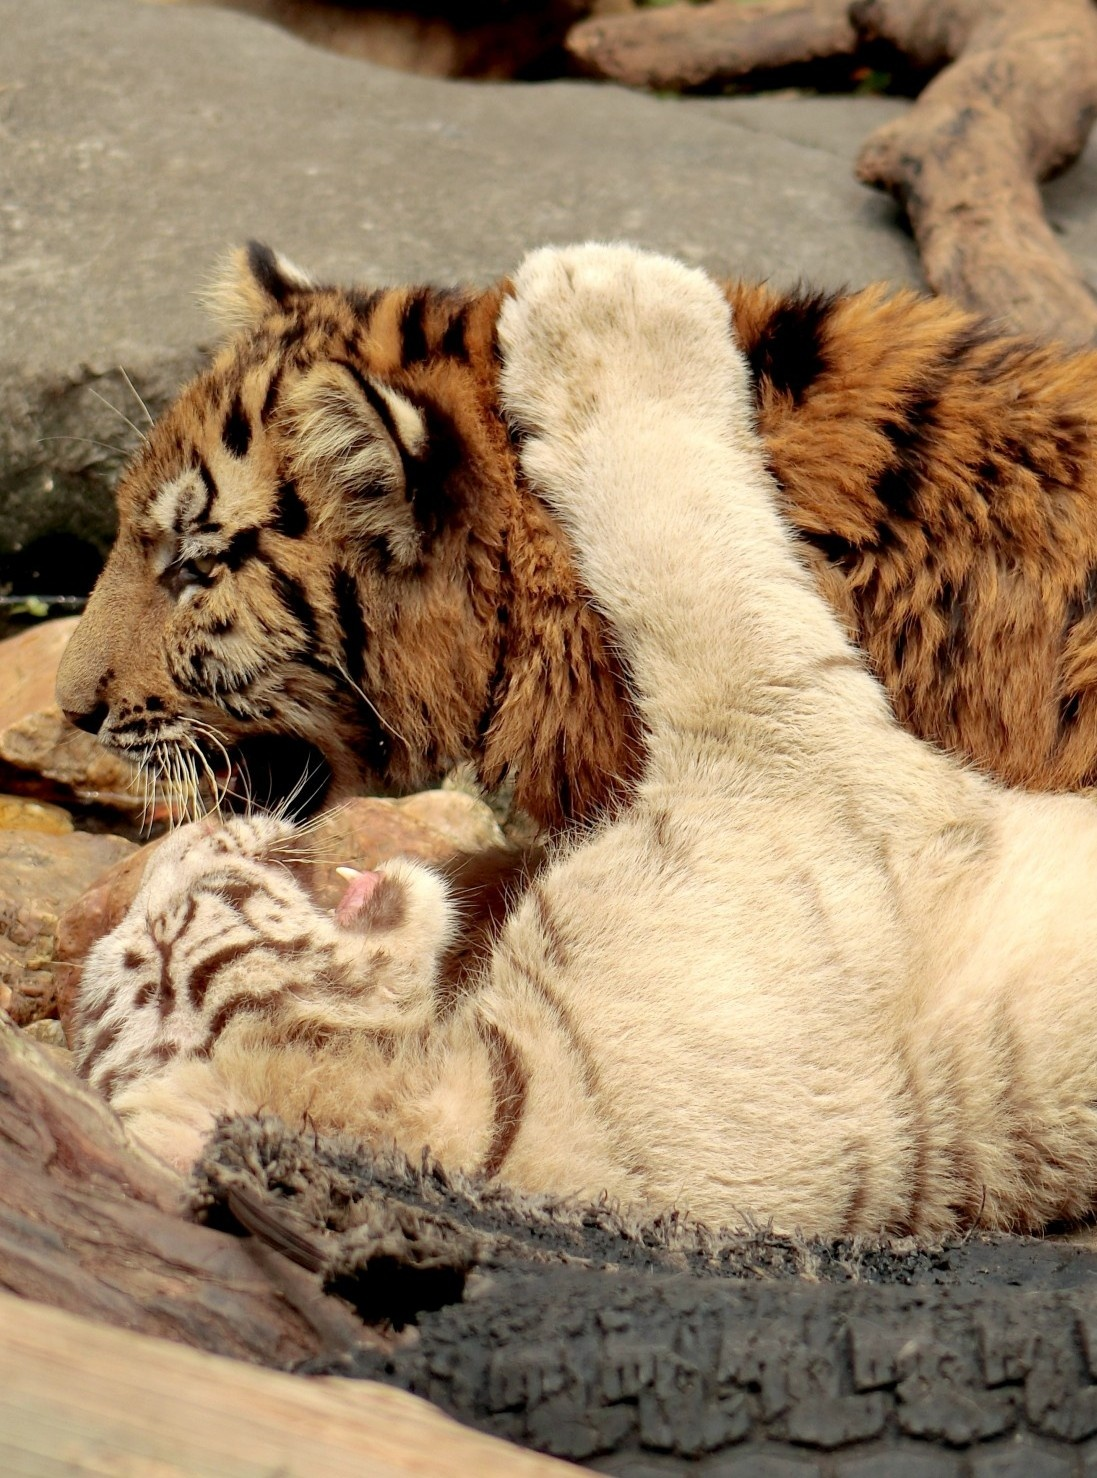 Young Tigers-3 by pop88123